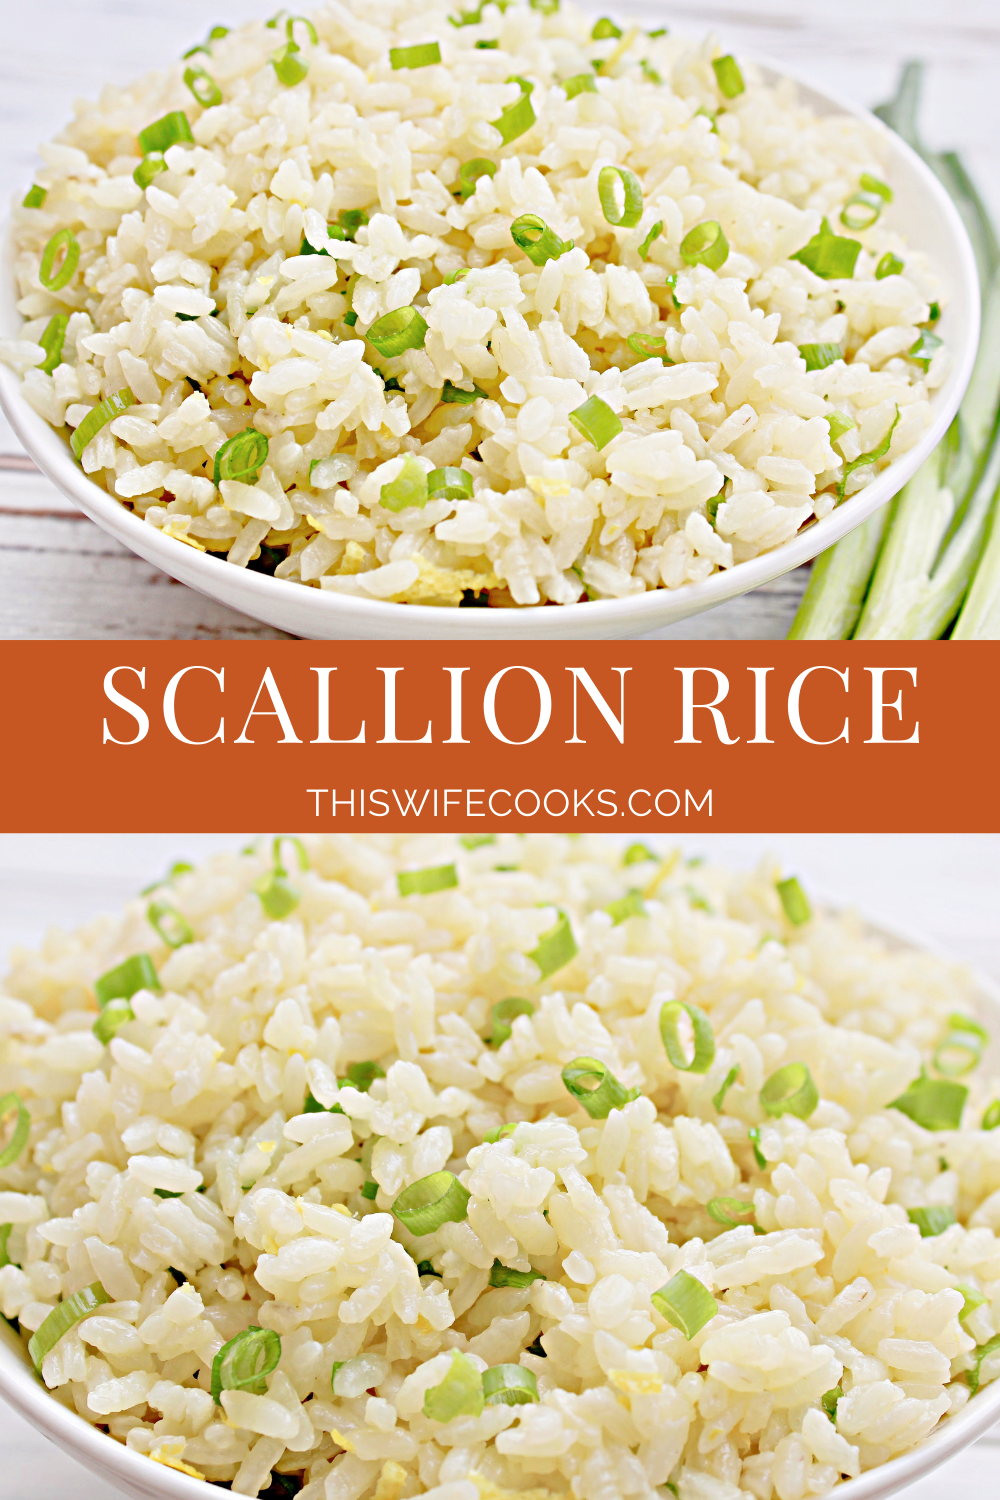 Scallion Rice ~ A light and mild-flavored white rice dish made with fresh green onions and lemon zest. Ready to serve in about 20 minutes. via @thiswifecooks